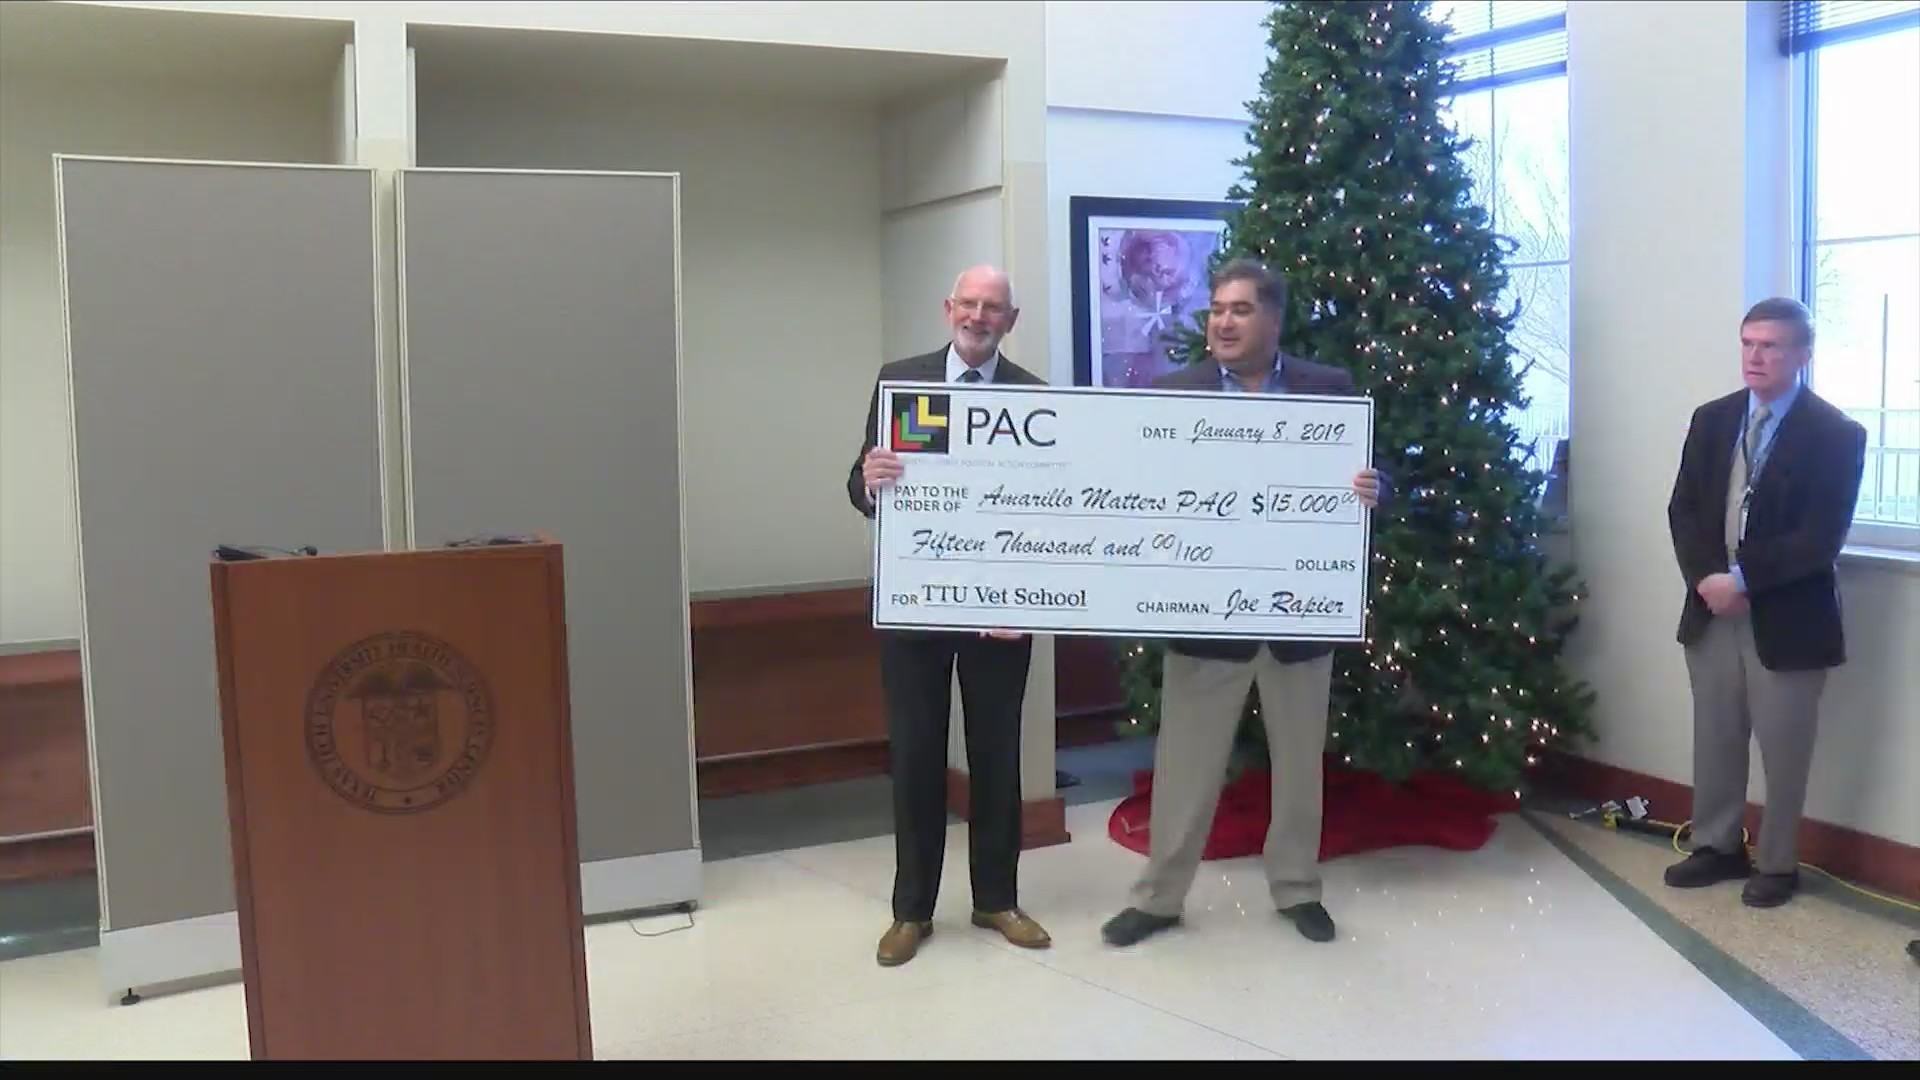 Amarillo Matters gets $15,000 from Lubbock Chamber PAC